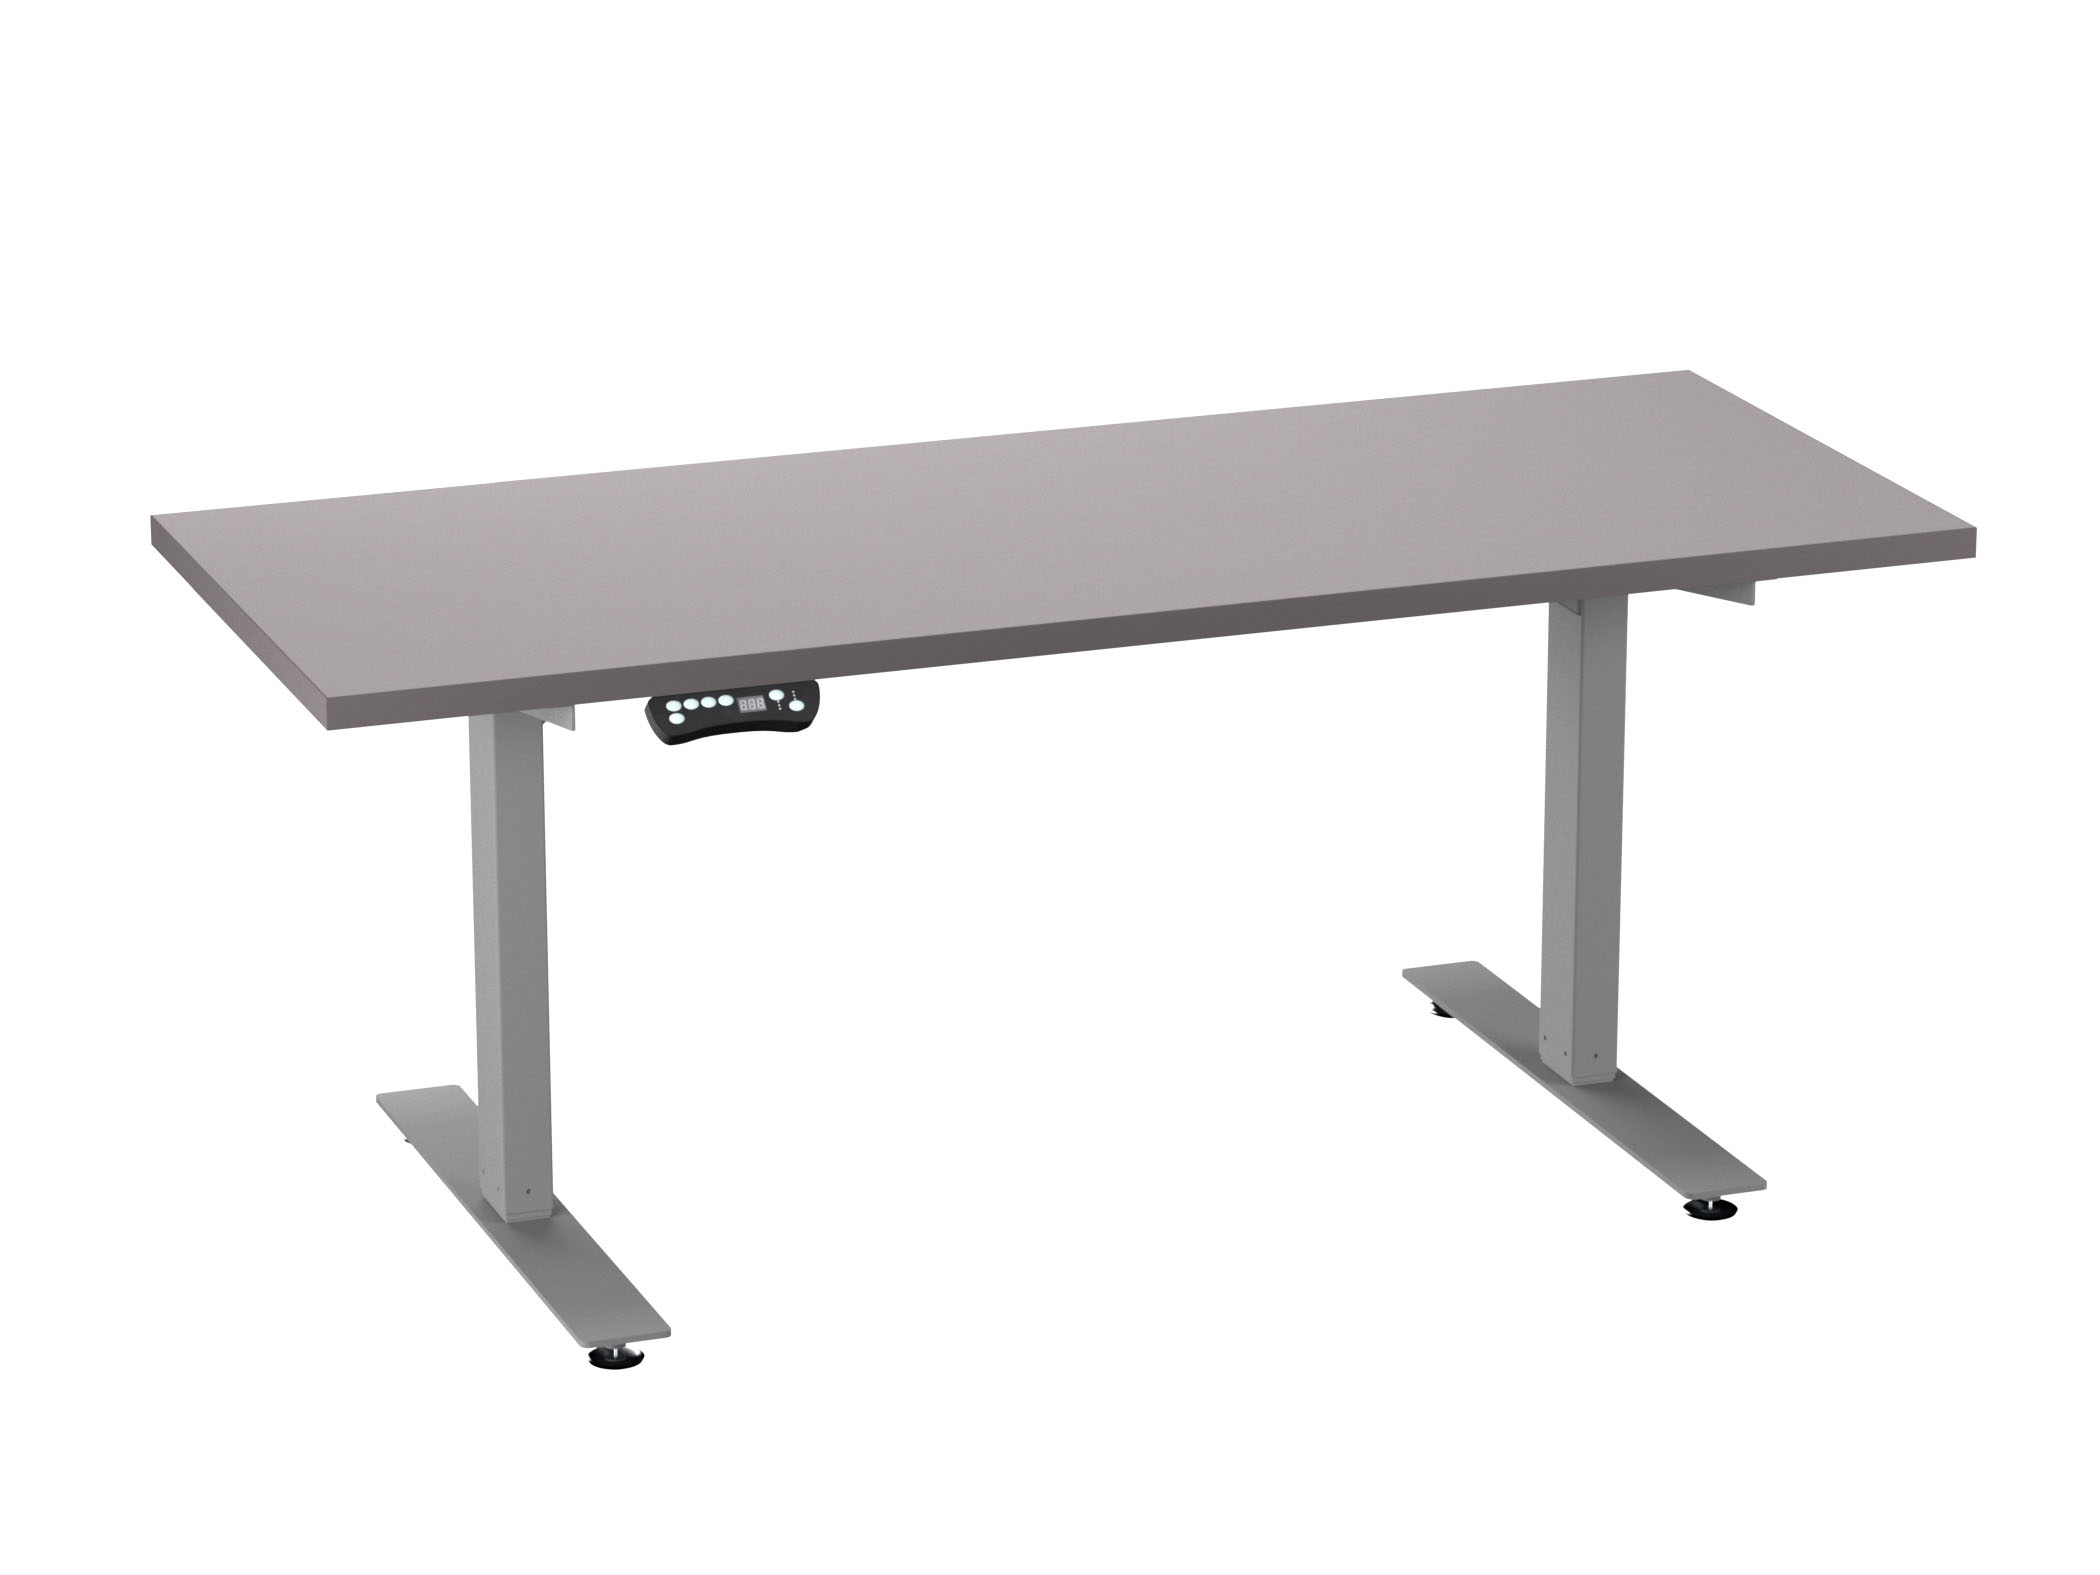 Cubicle Furniture from Compel - HiLo adjustable table